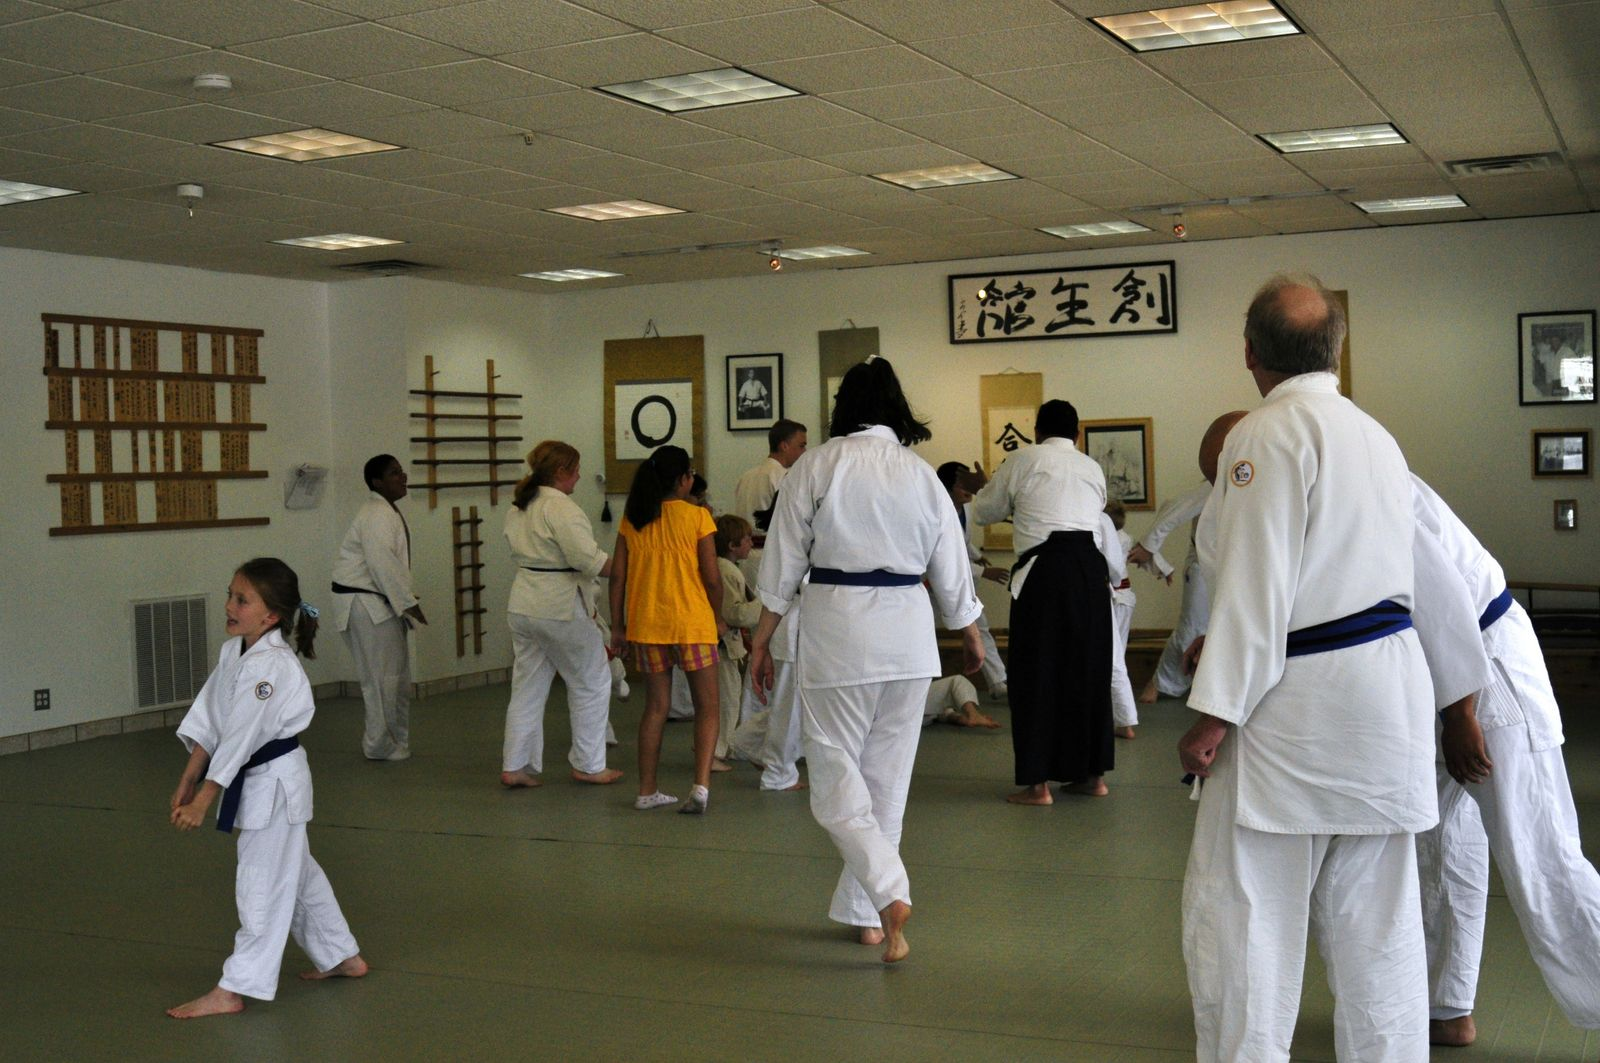 2010 Open House for A Center For The Martial Arts / Soseikan